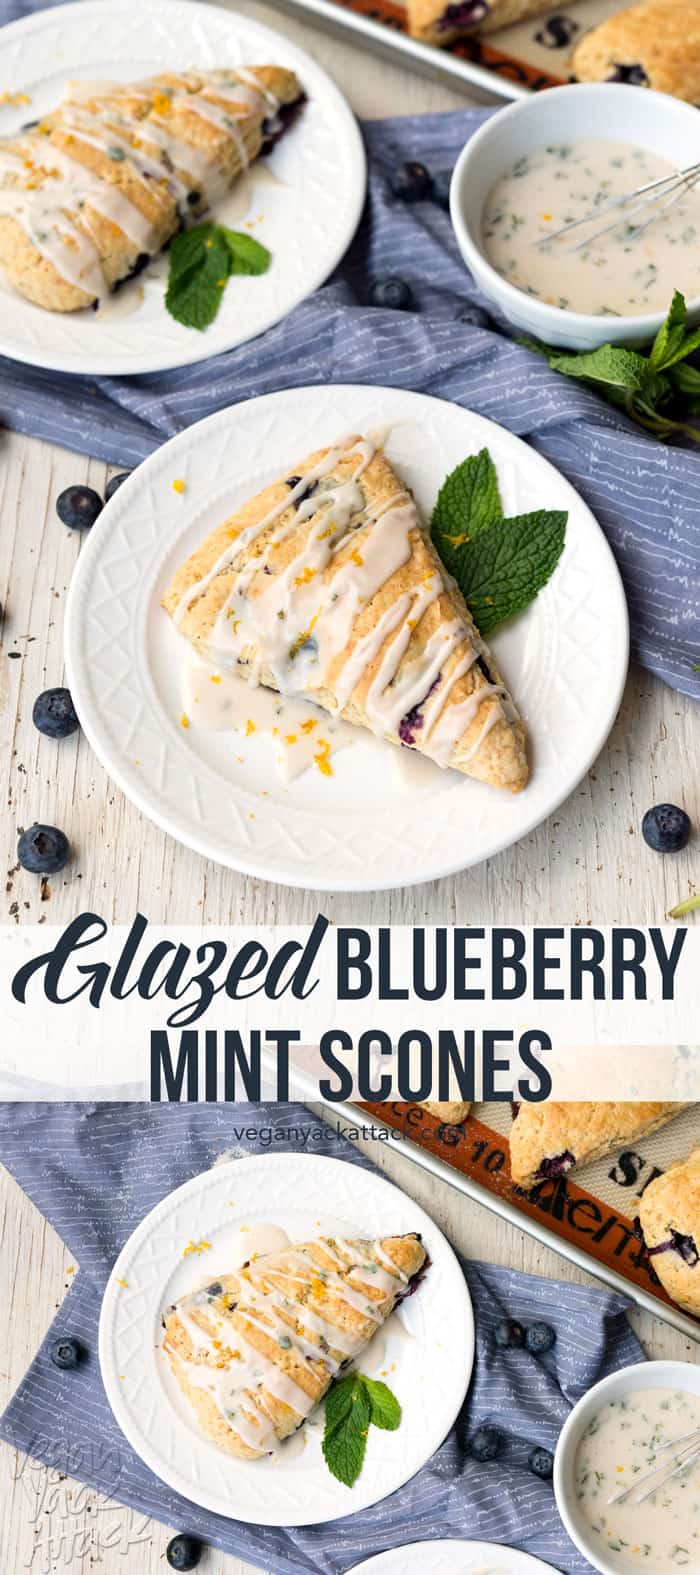 These Glazed Blueberry Mint Scones are the perfect Spring breakfast, paired with tea or a strong cup of coffee! Surprisingly easy-to-make, too. #Sweet4MotherNature Vegan, Soy-free, Dairy-free